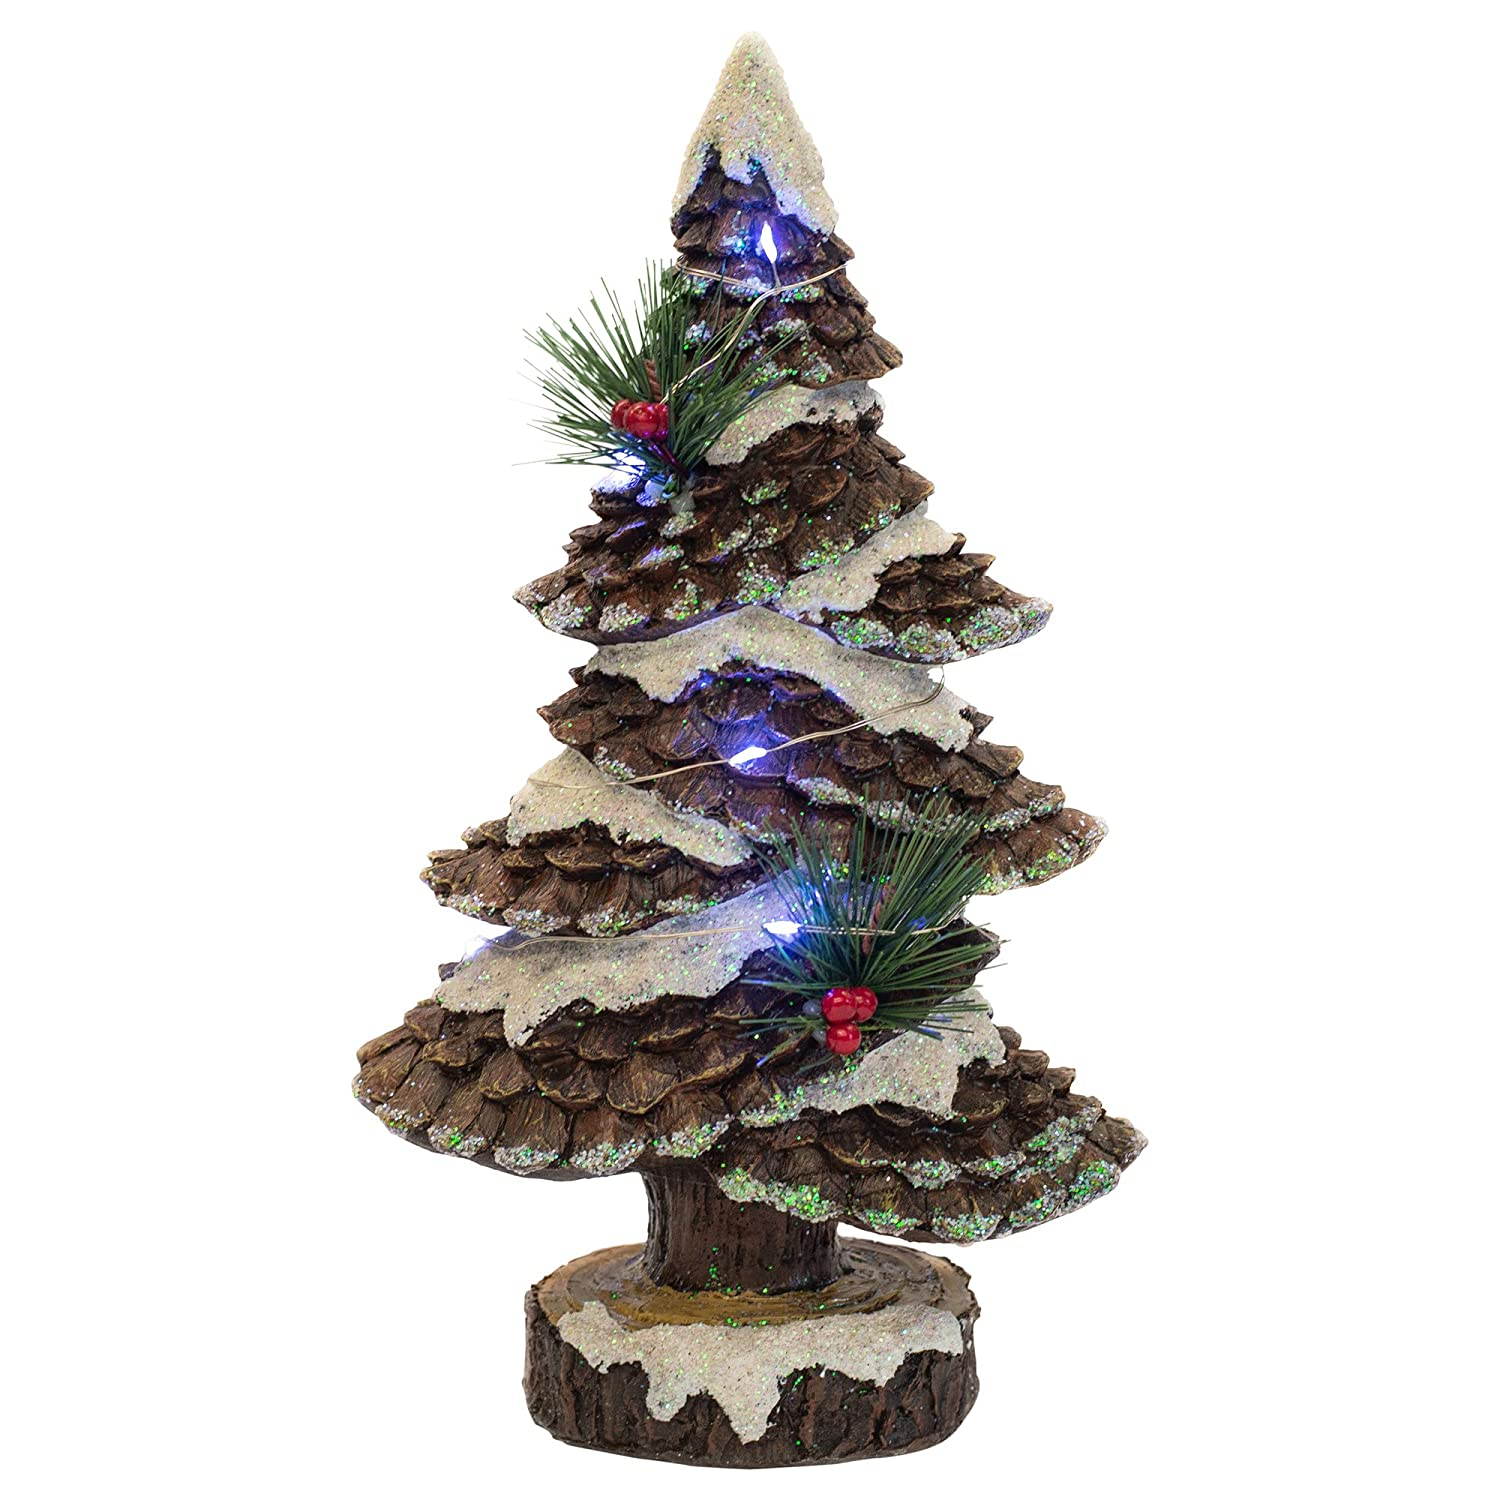 Delton Products LED Pinecone Tree 7 Inches x 13 Inches Resin Home and Garden Decor